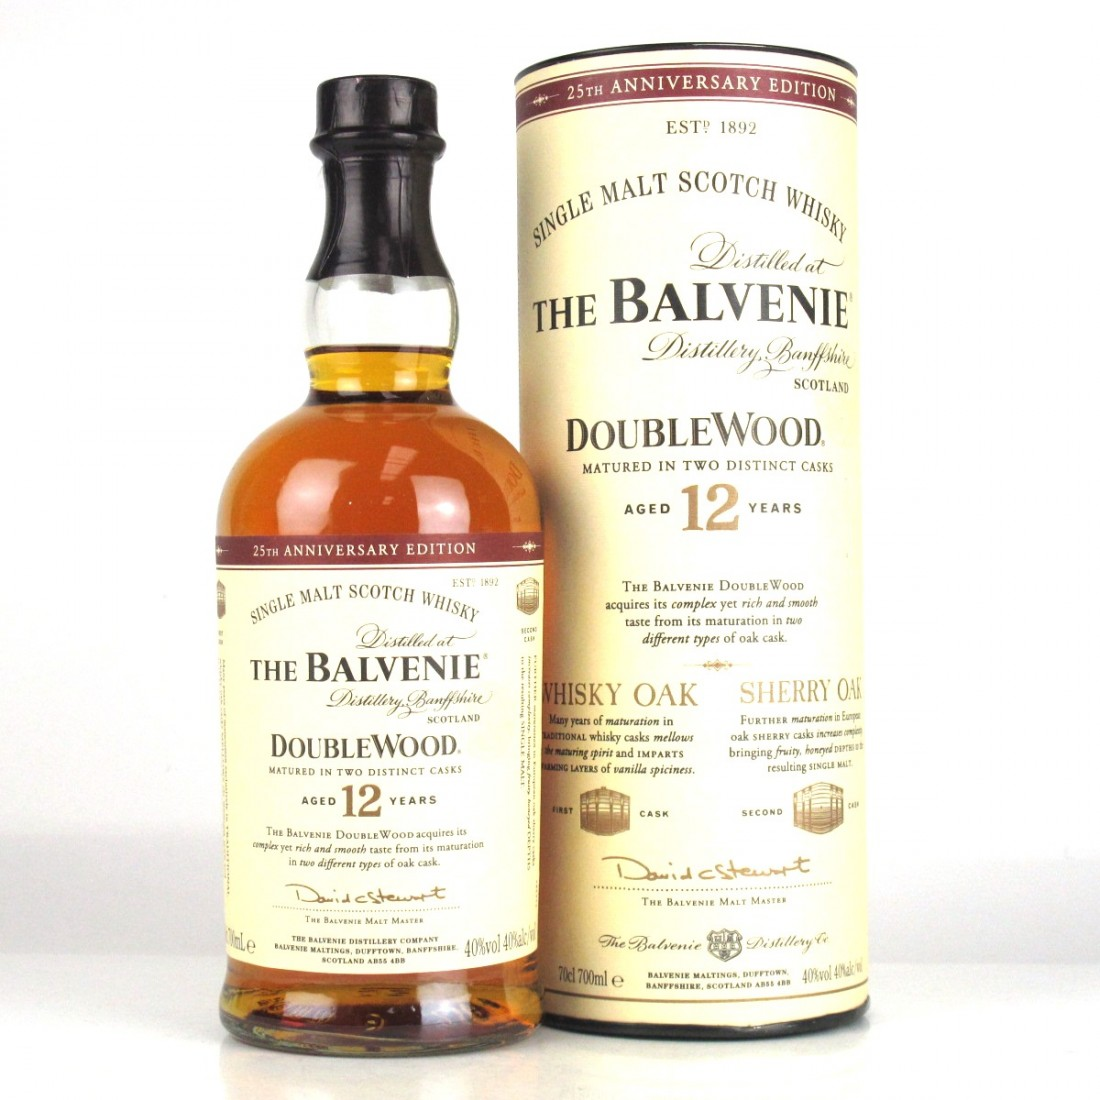 Balvenie 12 Year Old Double Wood / 25th Anniversary Edition